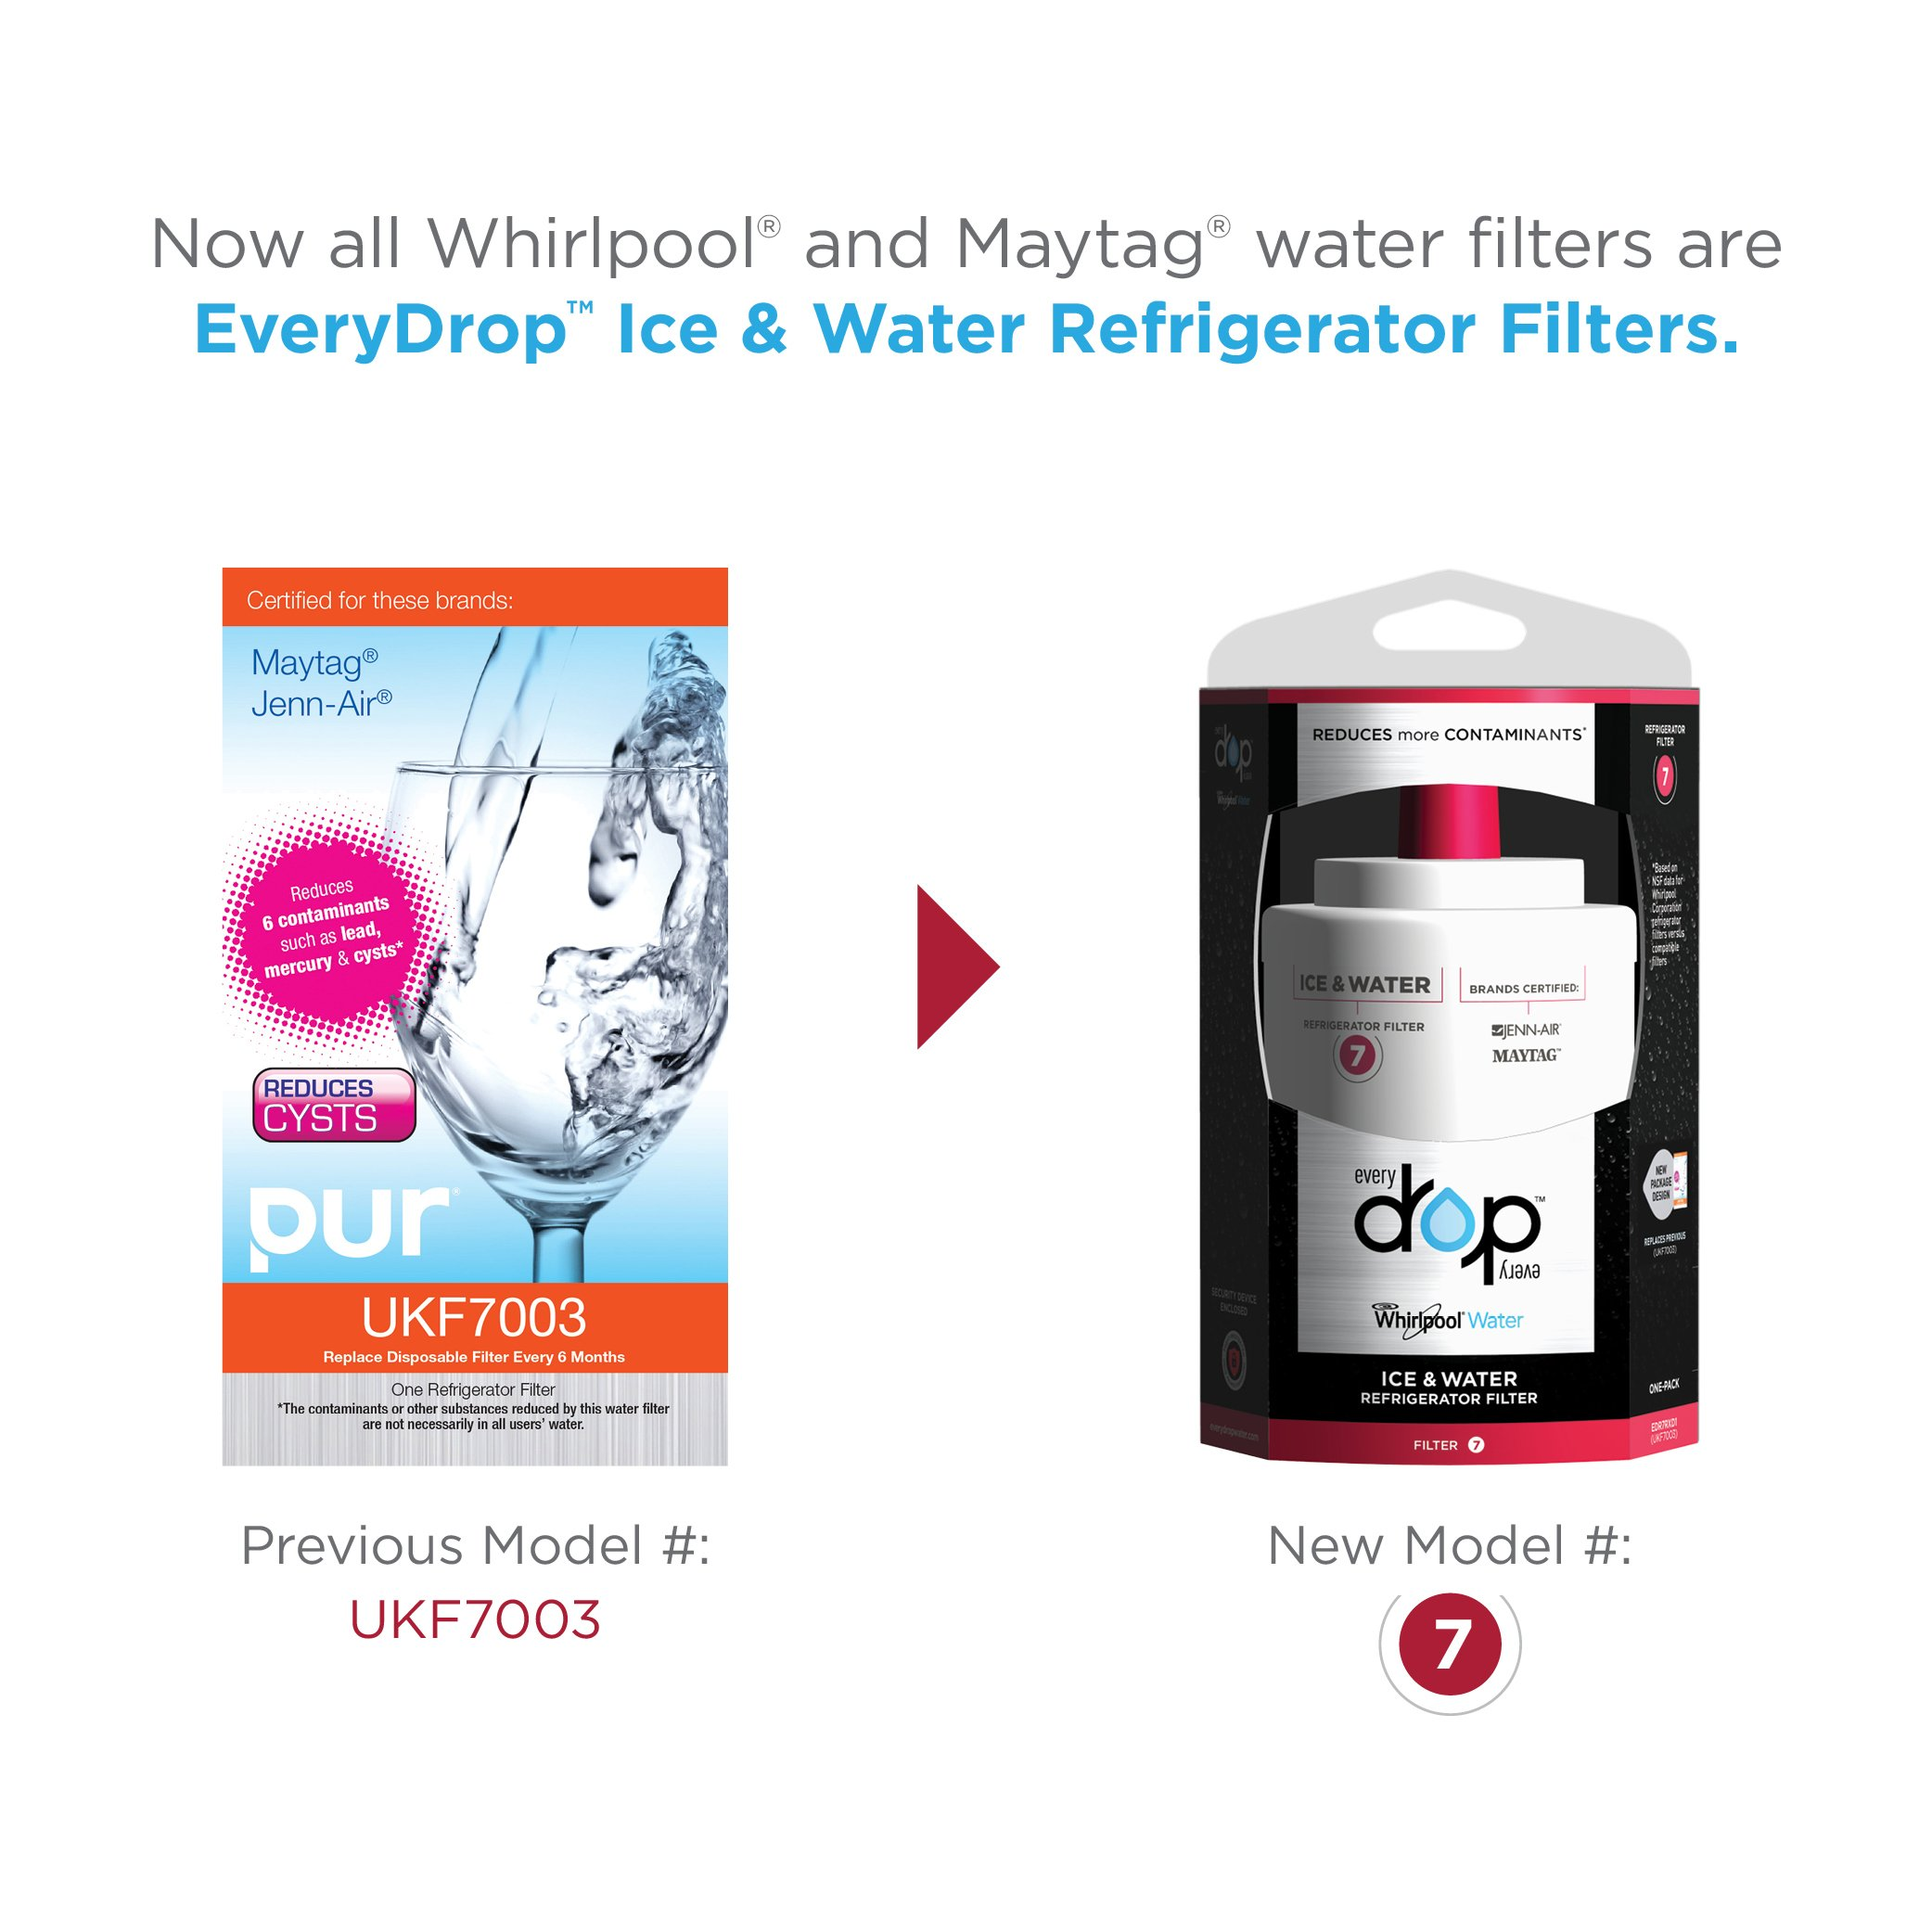 EveryDrop by Whirlpool Refrigerator Water Filter 7 (Pack of 2) by EveryDrop by Whirlpool (Image #2)